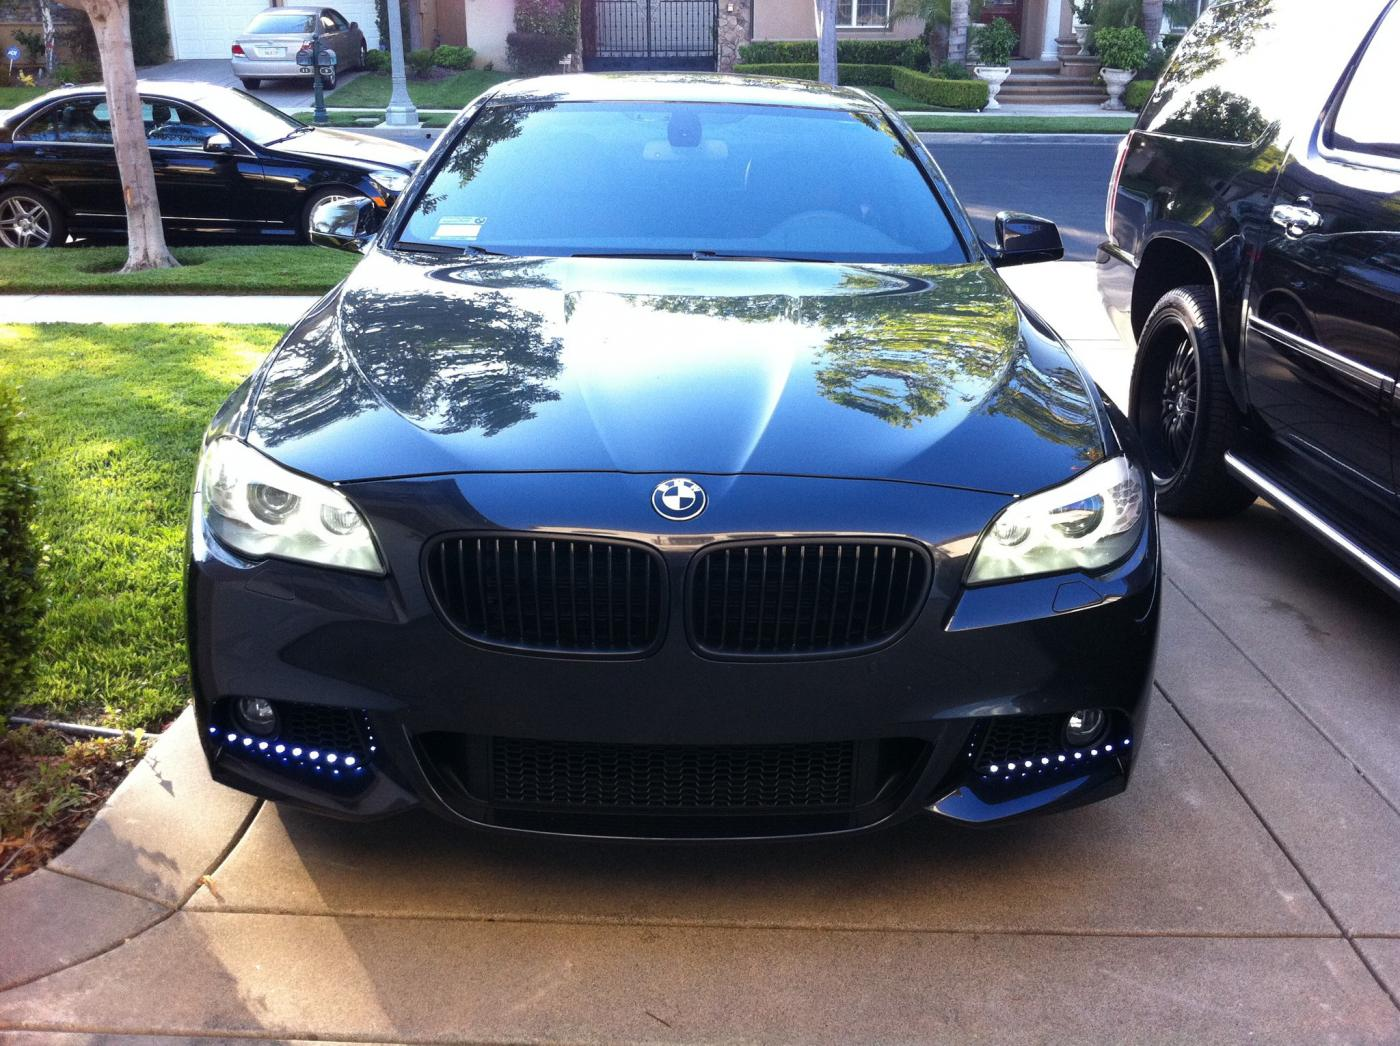 Blacked Out I - 2011 bmw 535 xi